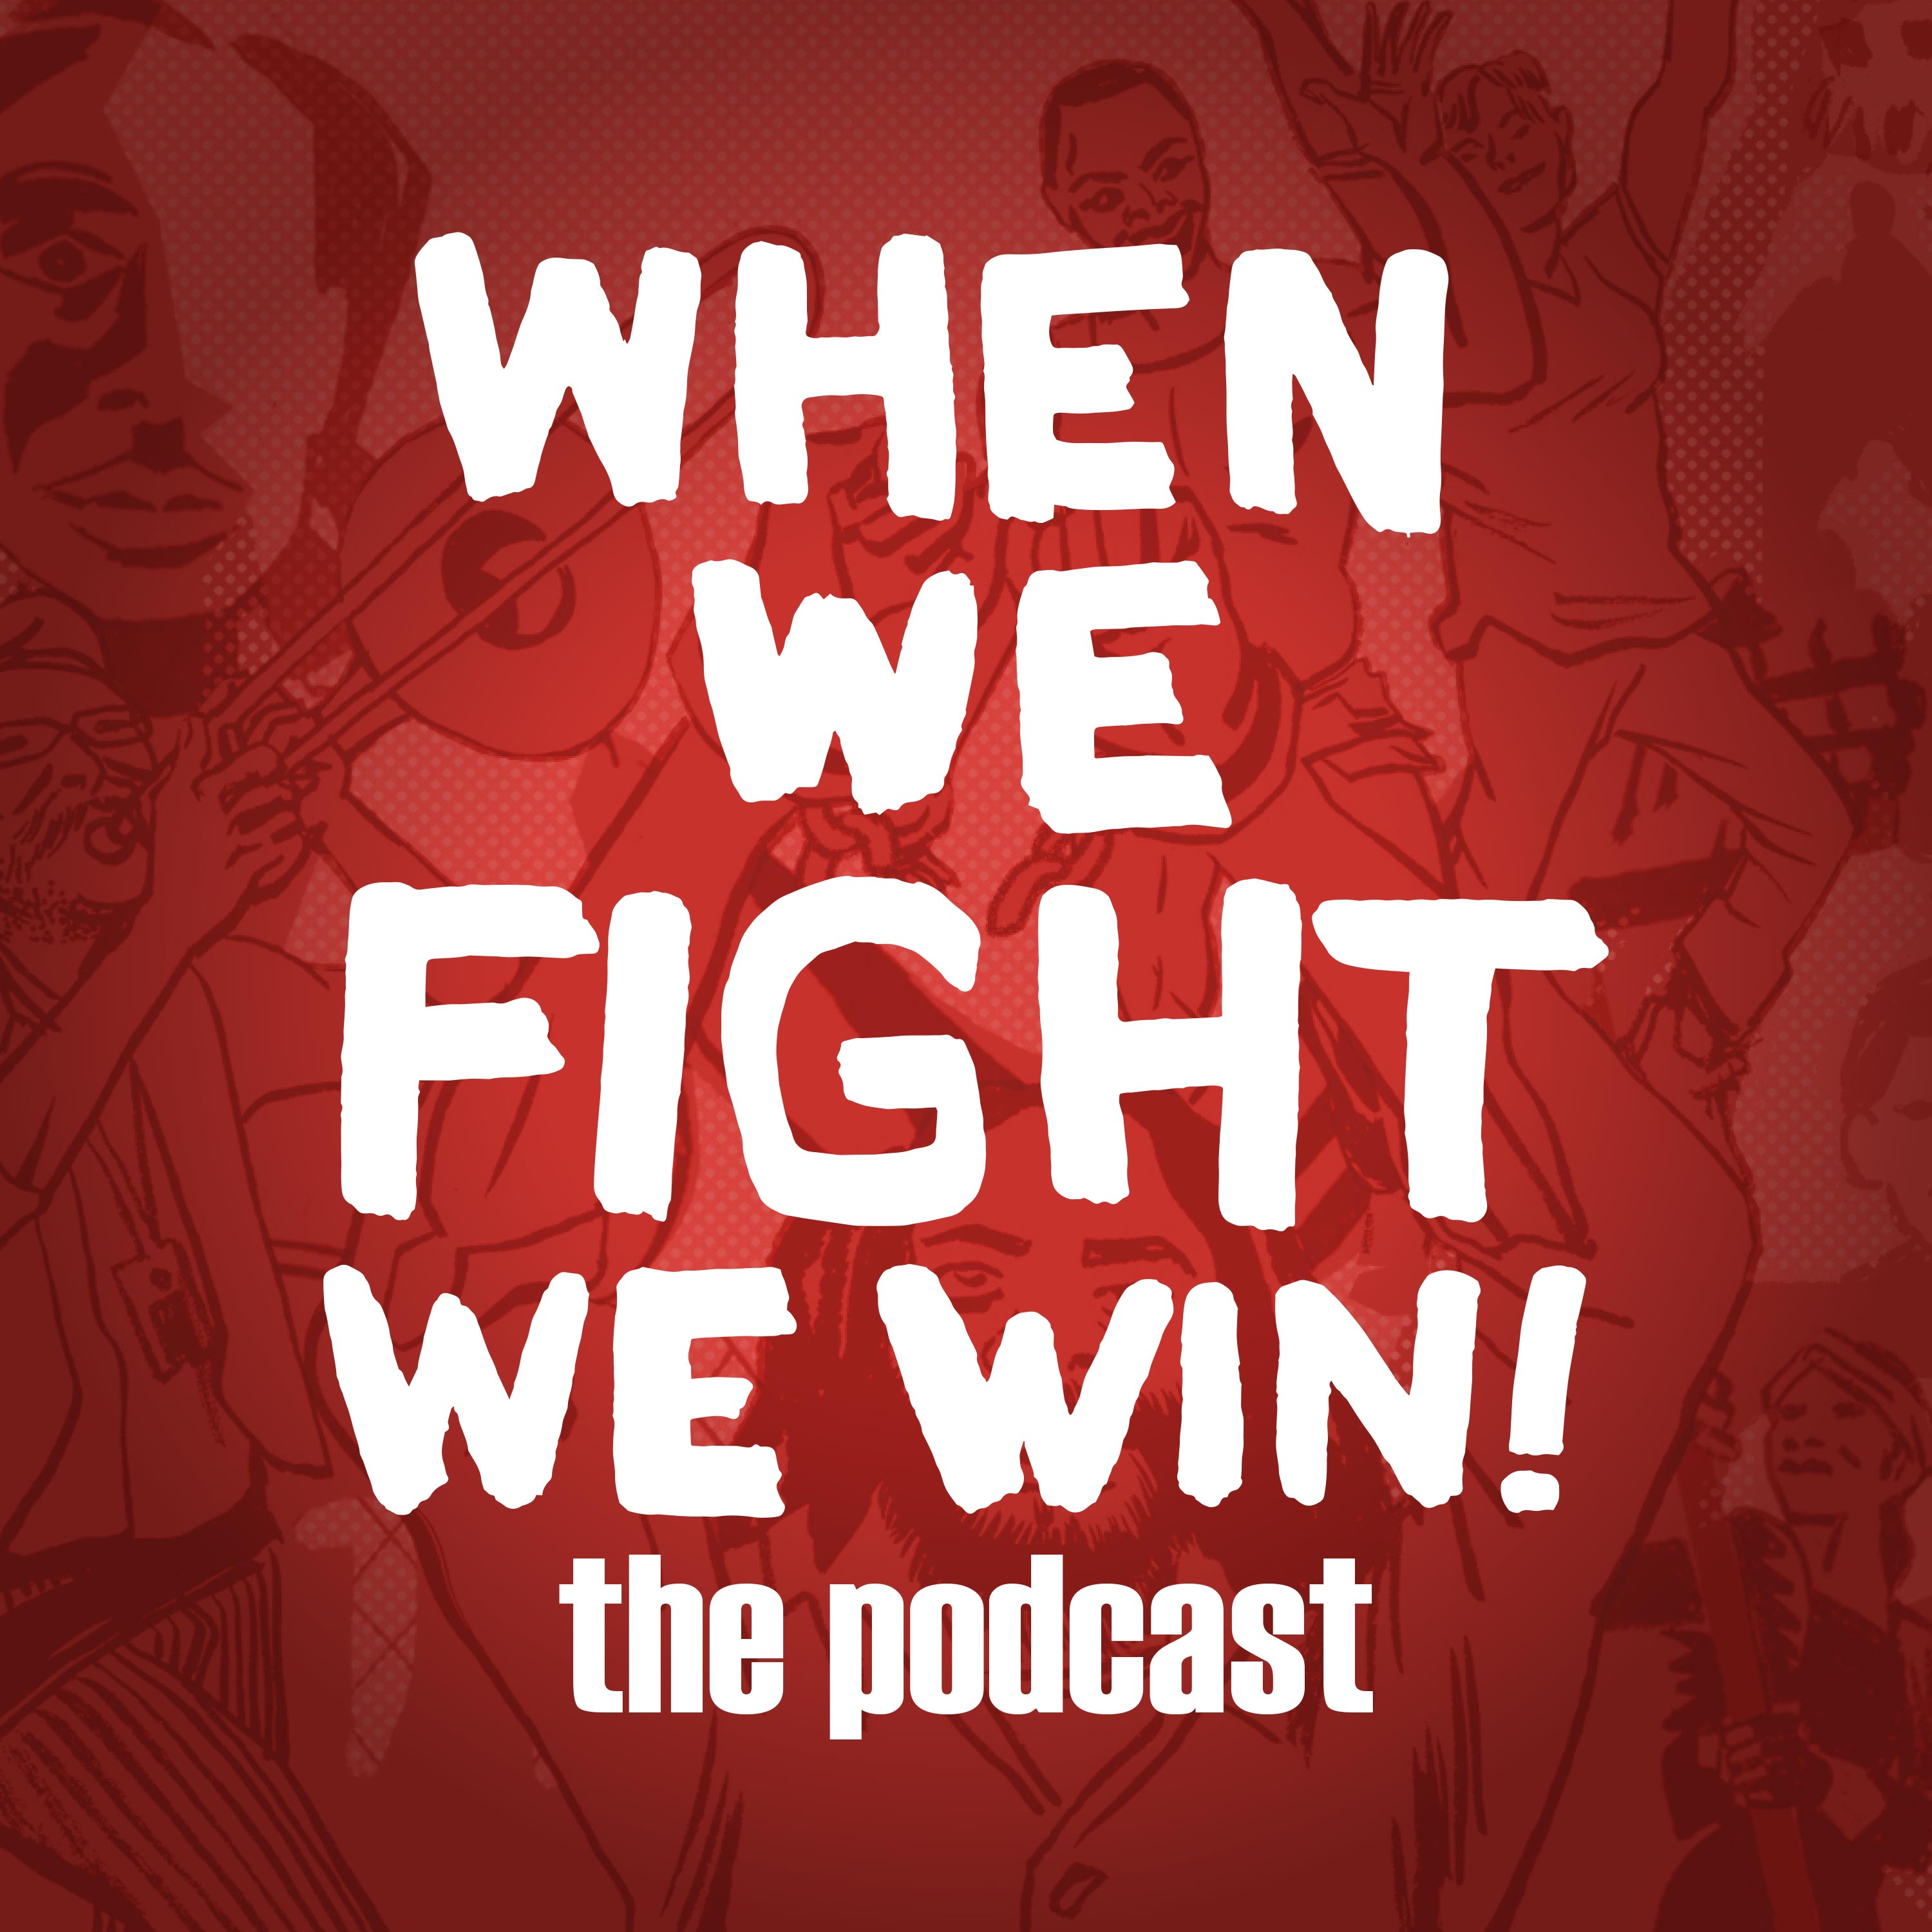 When We Fight, We Win!: The Podcast show art